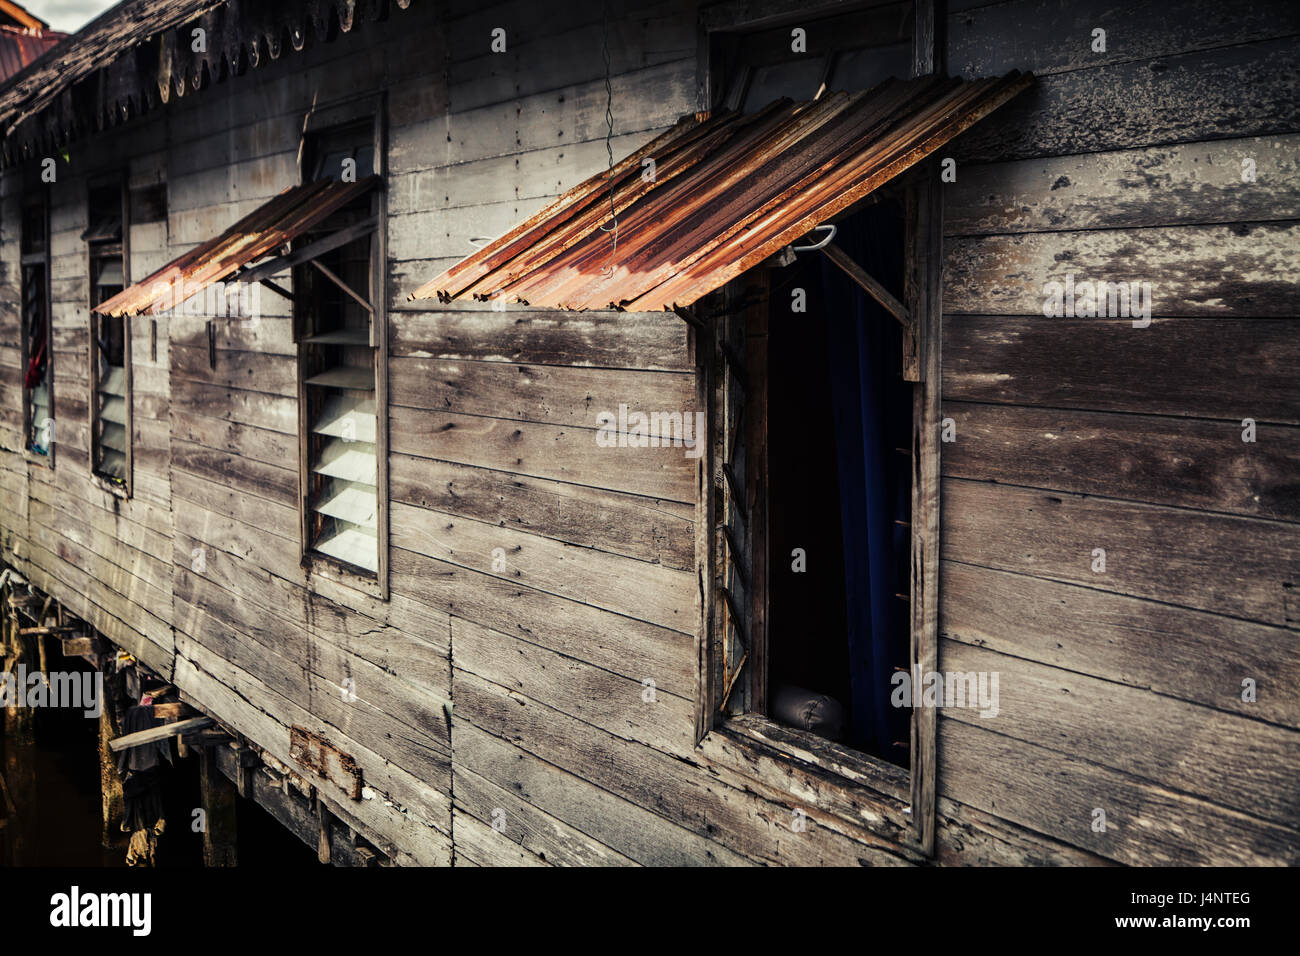 wooden house shack on stilts stockfotos wooden house shack on stilts bilder alamy. Black Bedroom Furniture Sets. Home Design Ideas